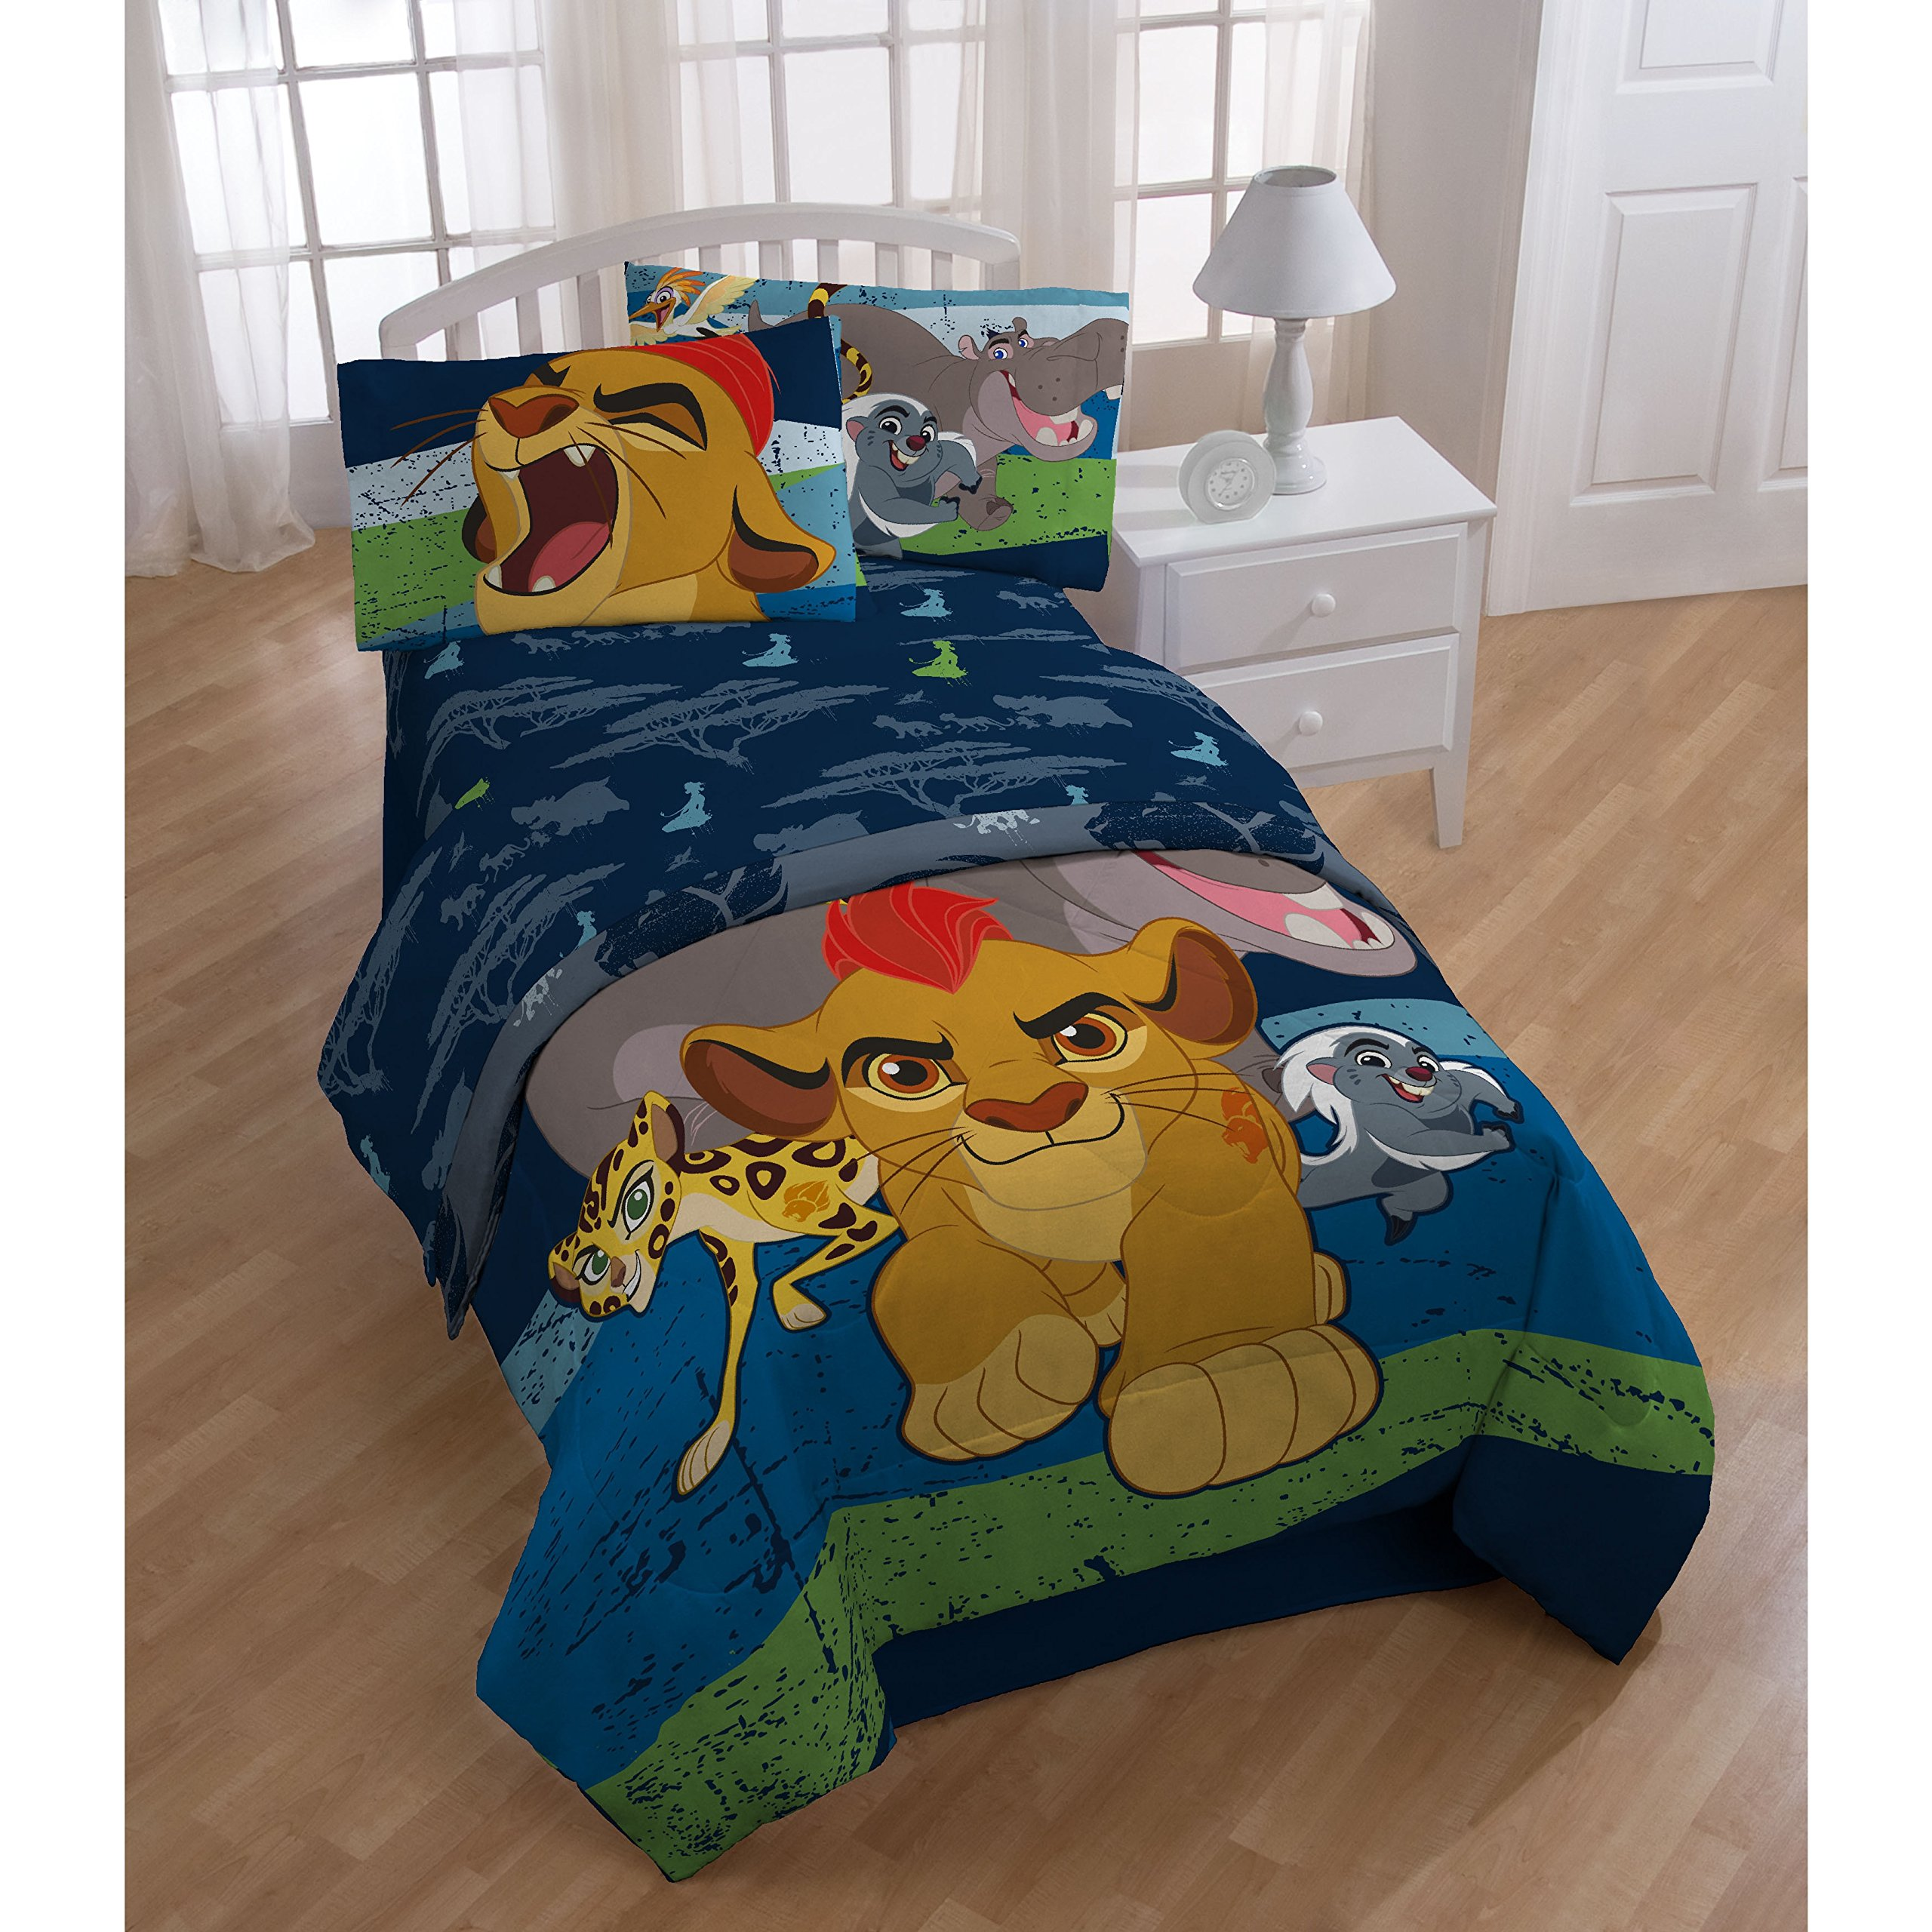 5 Piece Disney Kids The Lion Guard King The Movie Comforter Twin Set, All Over Jungle Friend Bedding, Multi Characters Kion Bunga Badger Fuli Cheetah Beshte Hippo Themed Pattern Blue Green Orange Grey